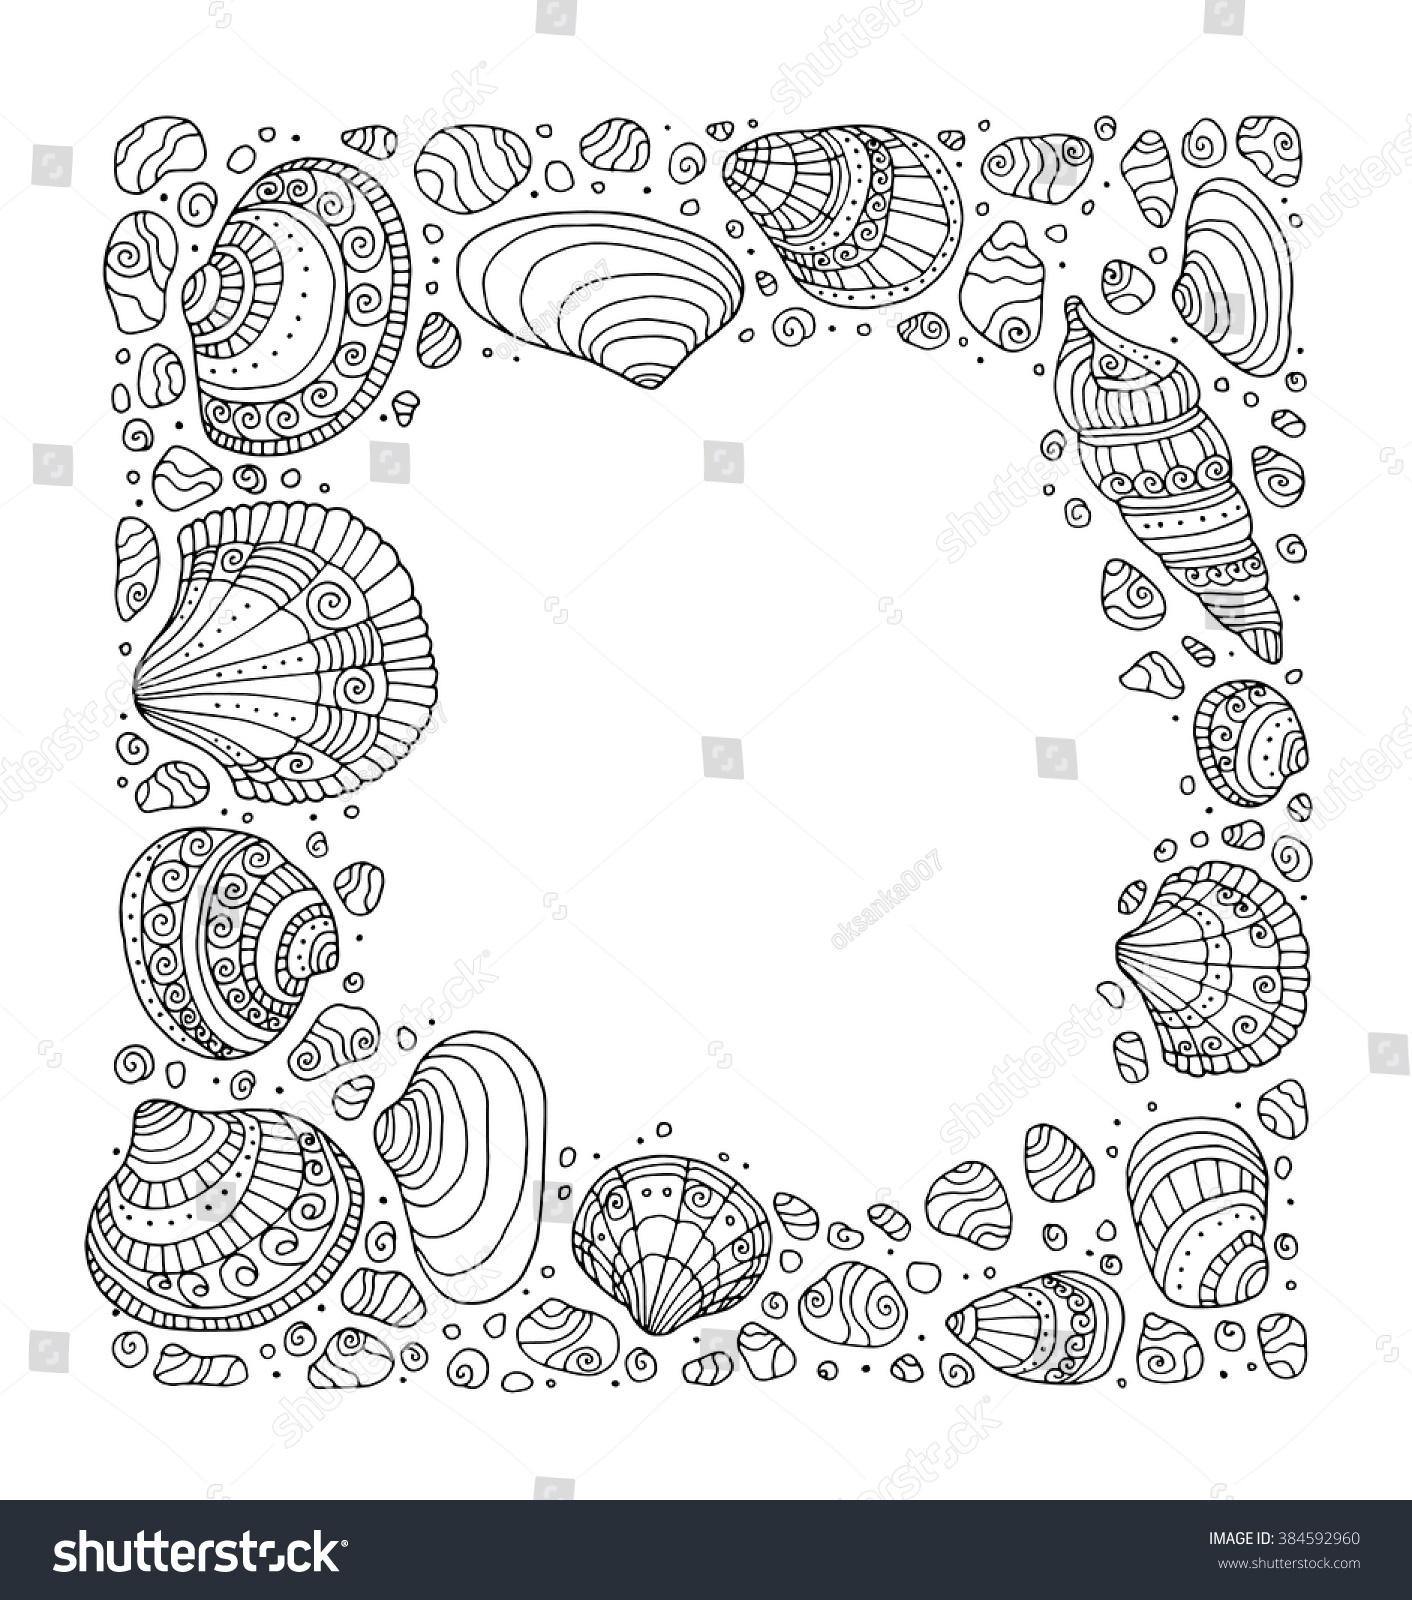 Zen ocean colouring book - Seashell Border Frame Ocean Pattern Vector Vintage Illustration Zentangle Coloring Book Page